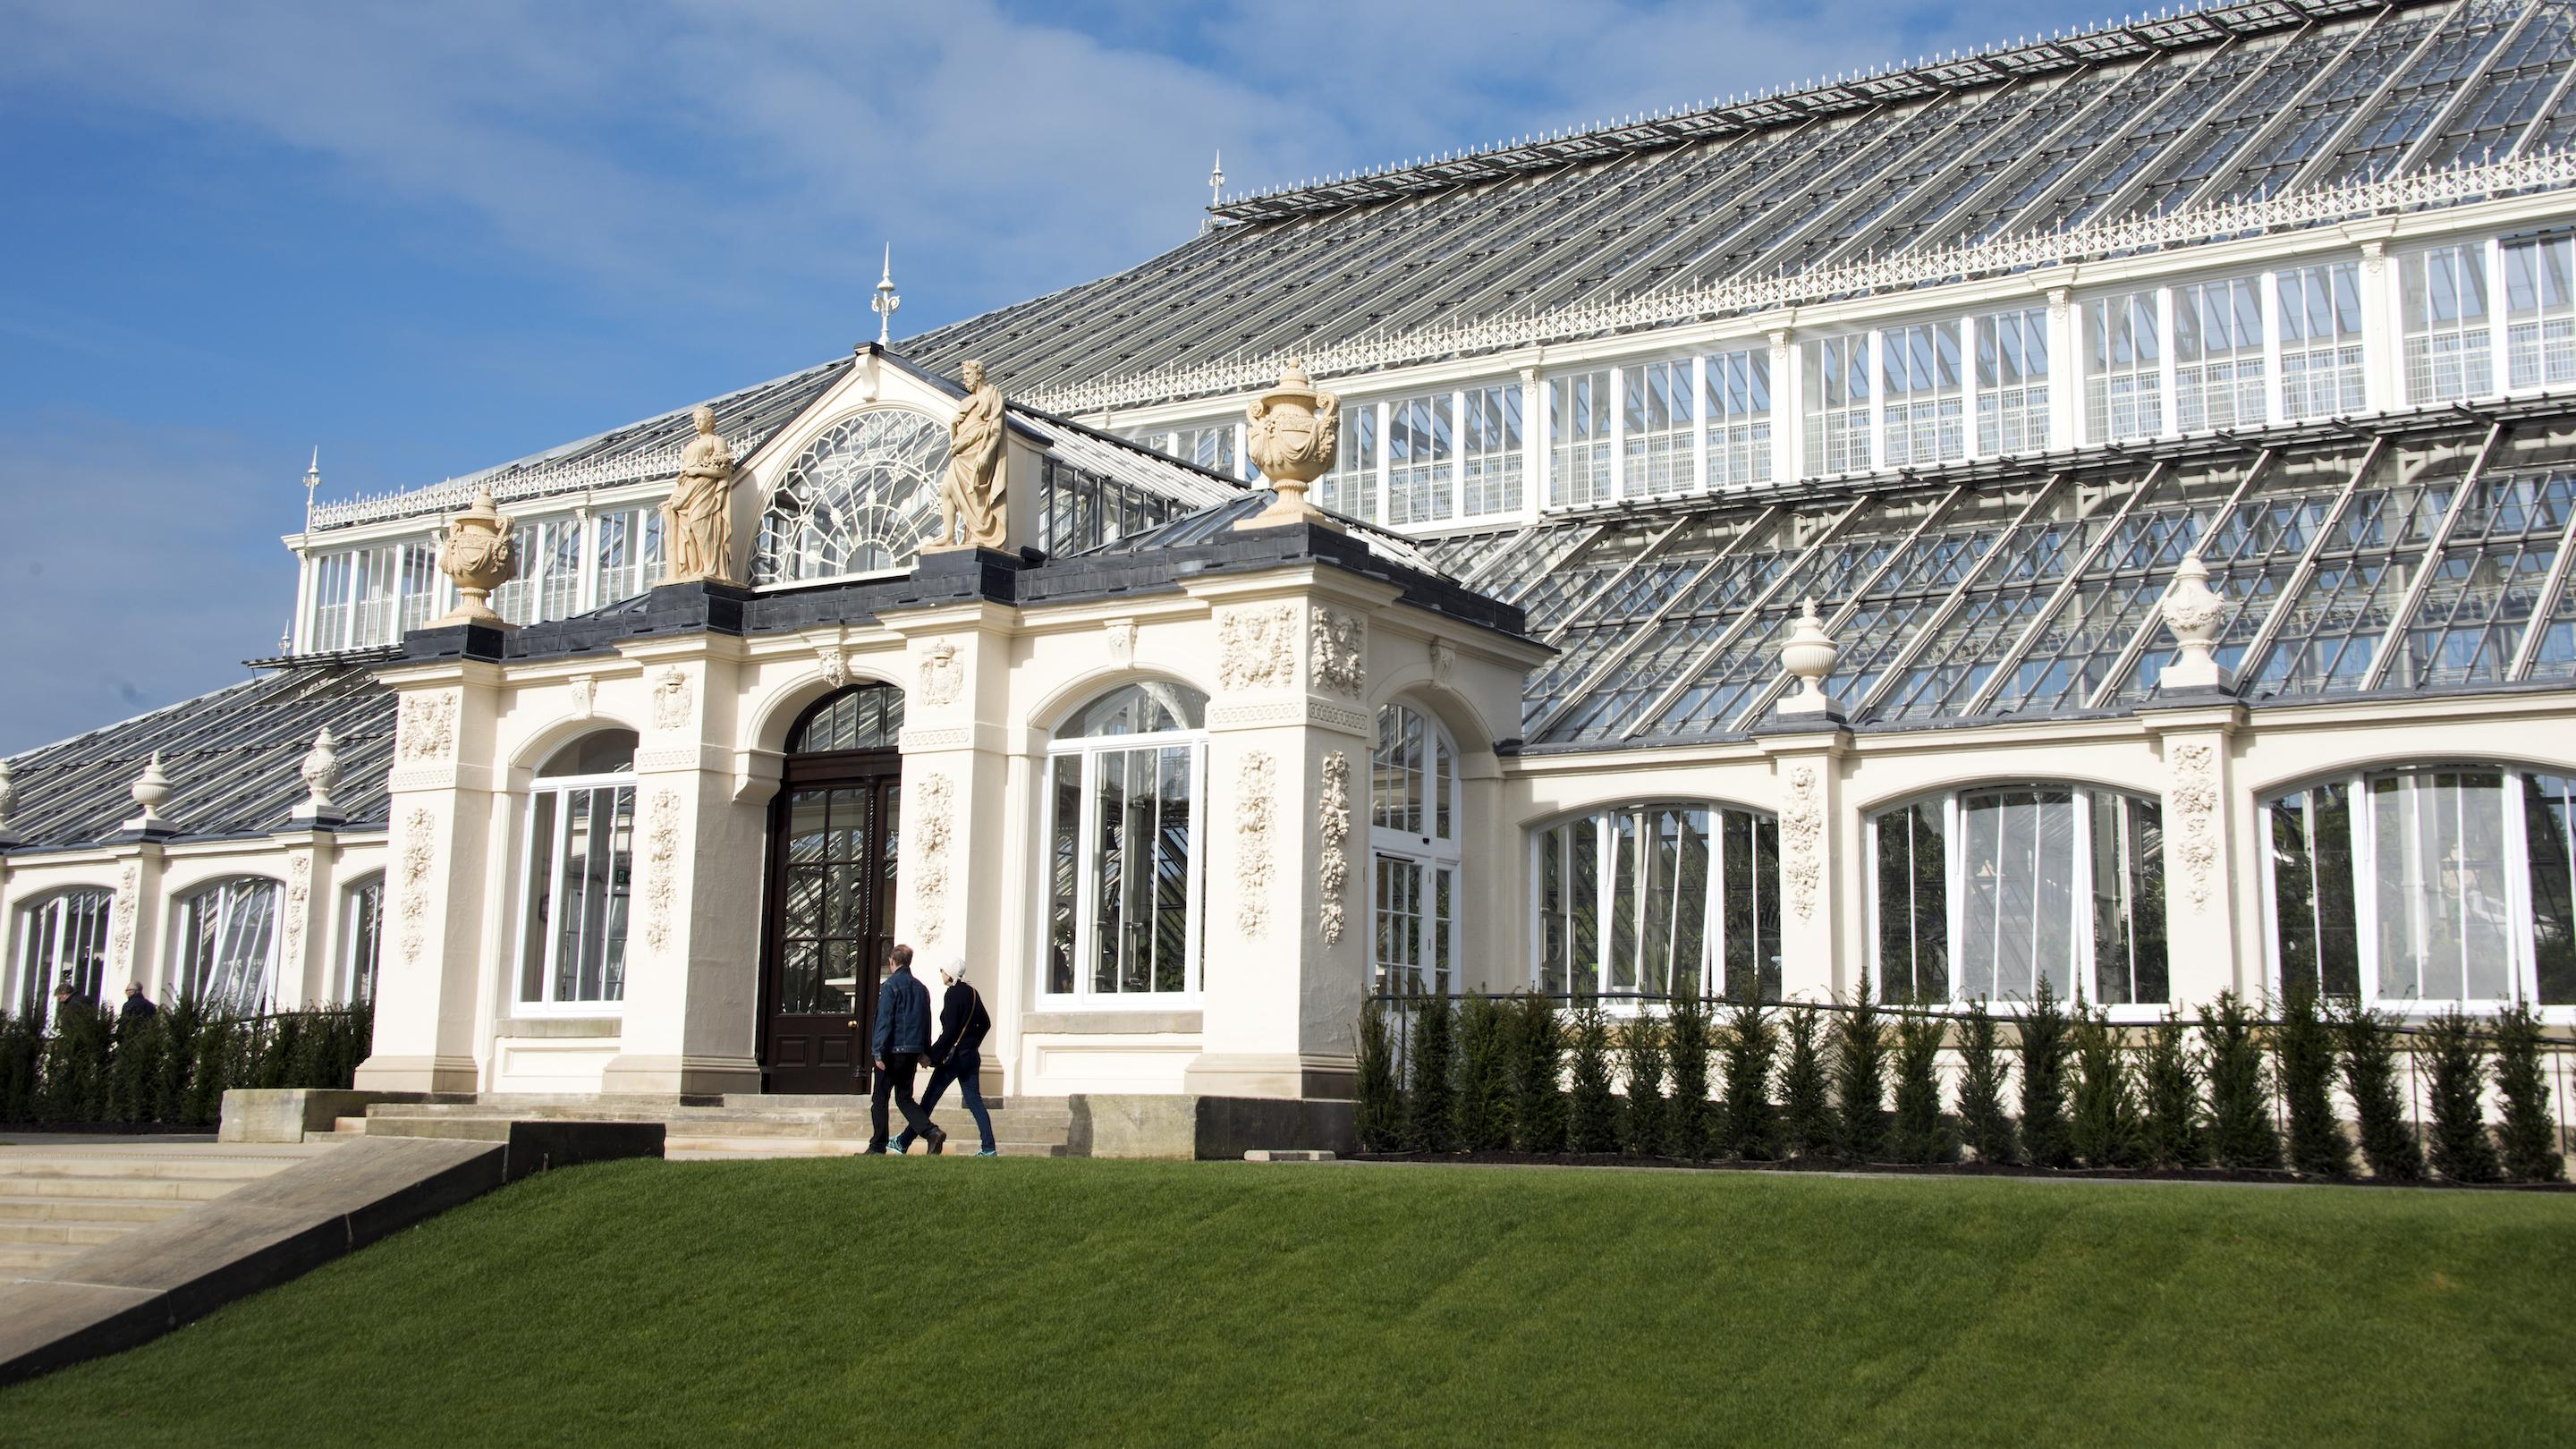 Exterior shot of Temperate House